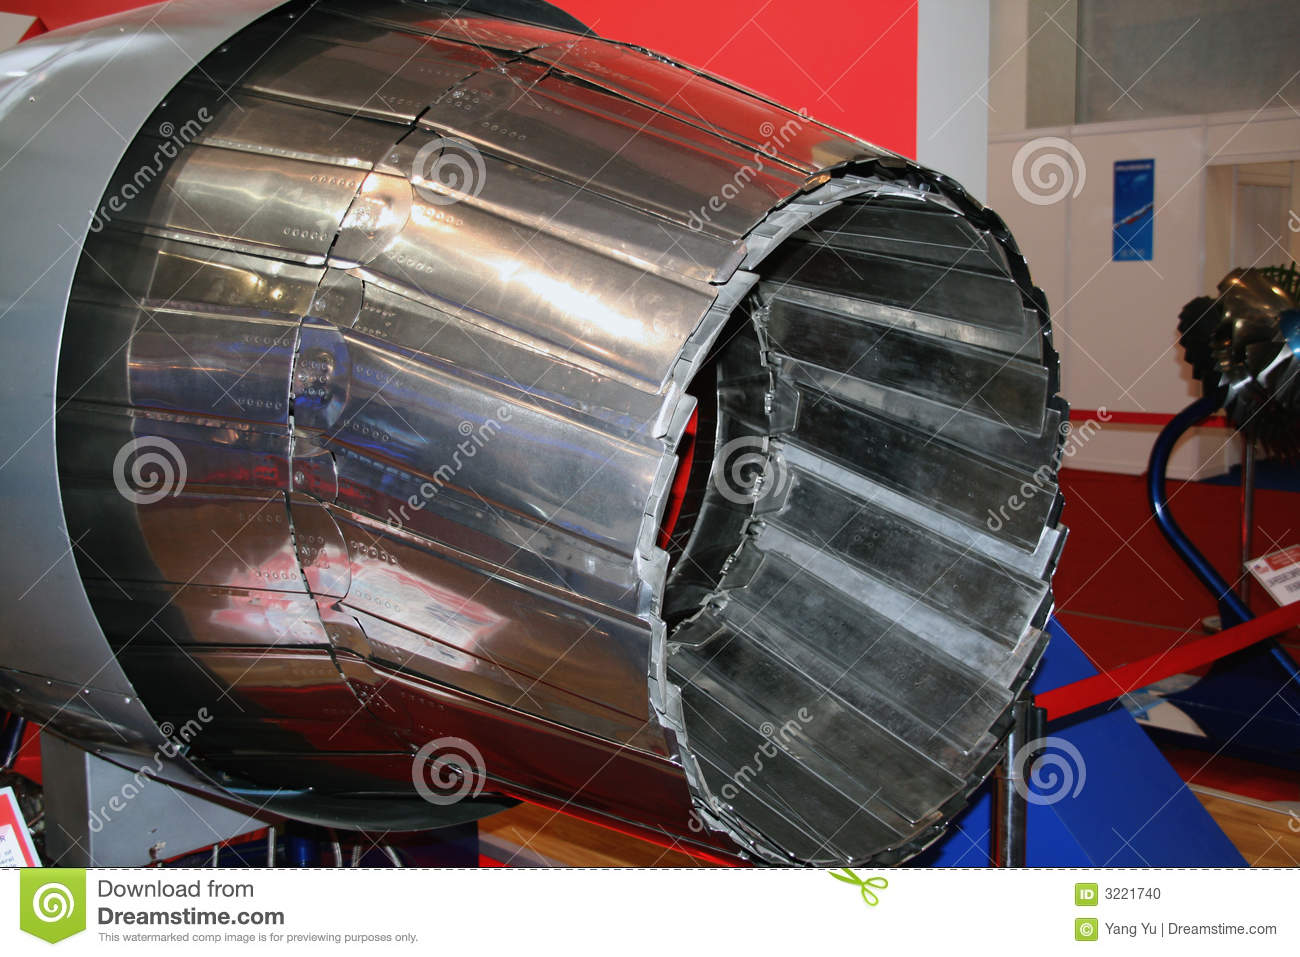 Afterburner Jet Engine Stock Photos, Images, & Pictures - 528 Images